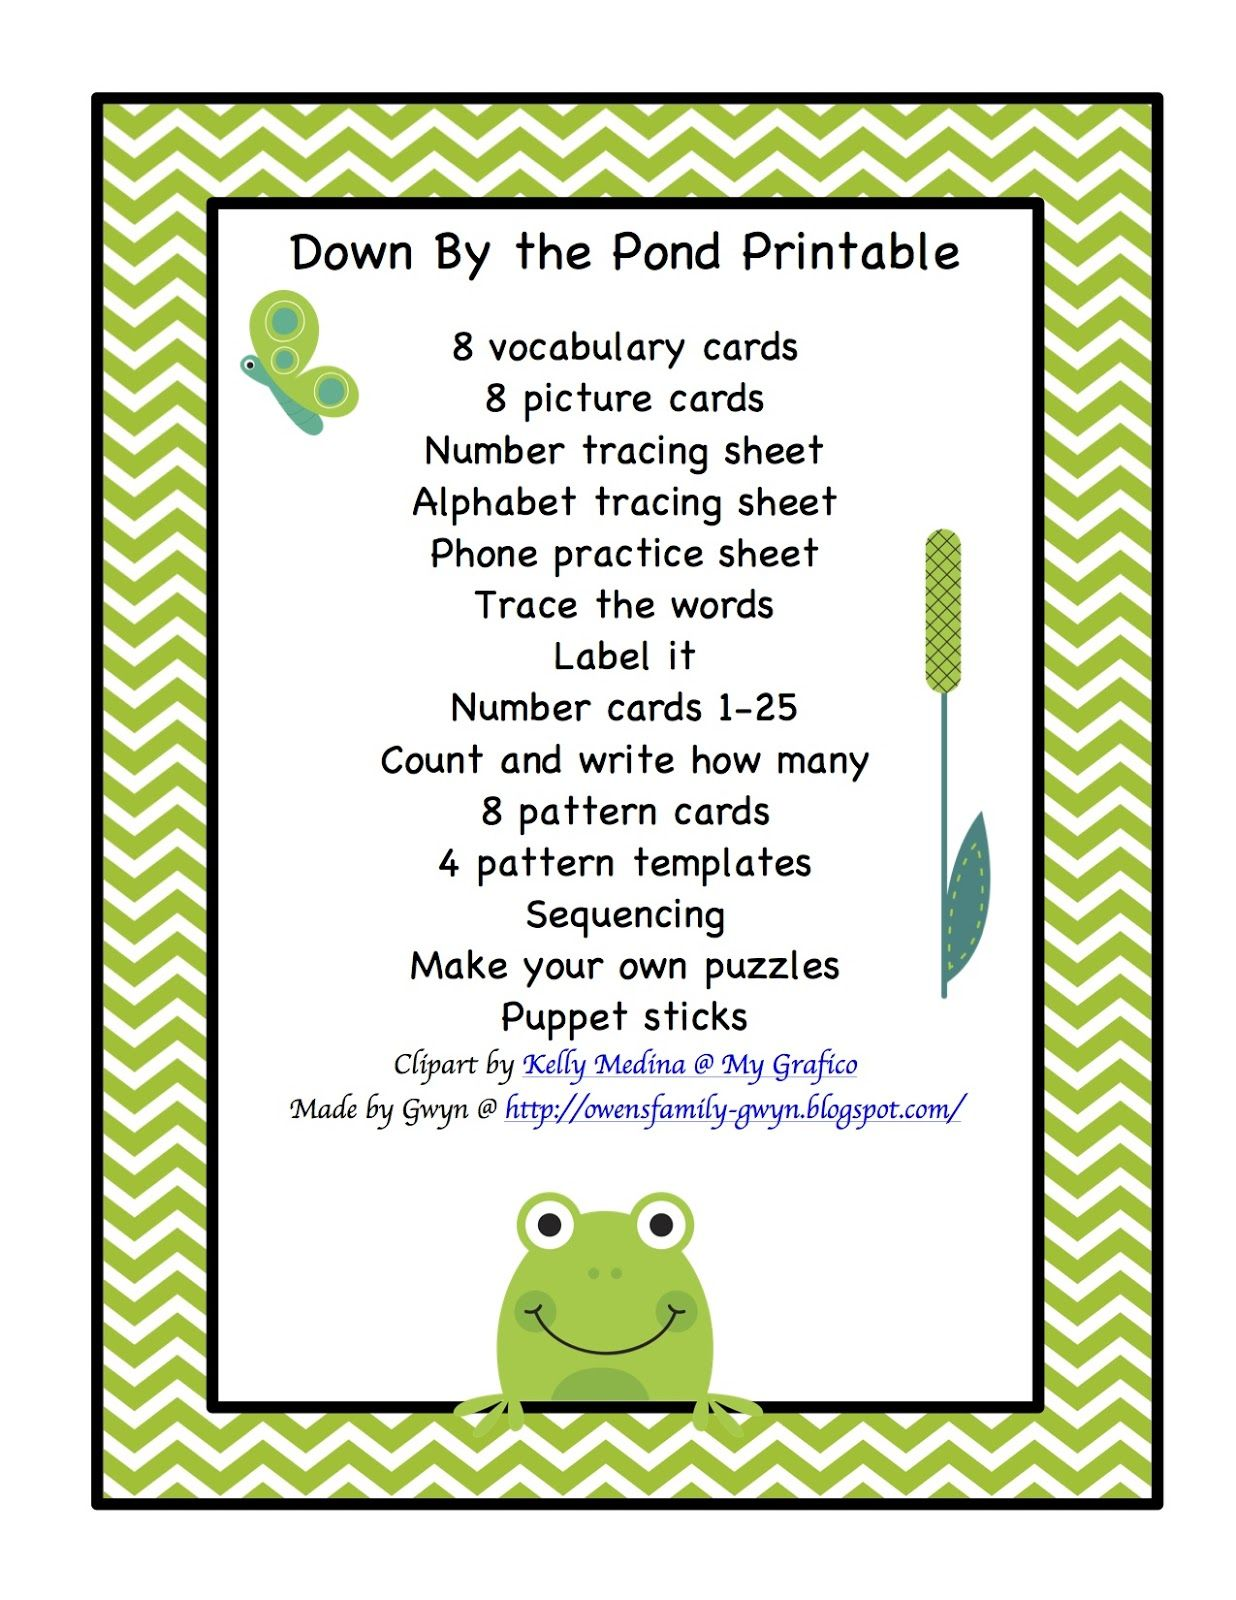 Down By The Pond Printable